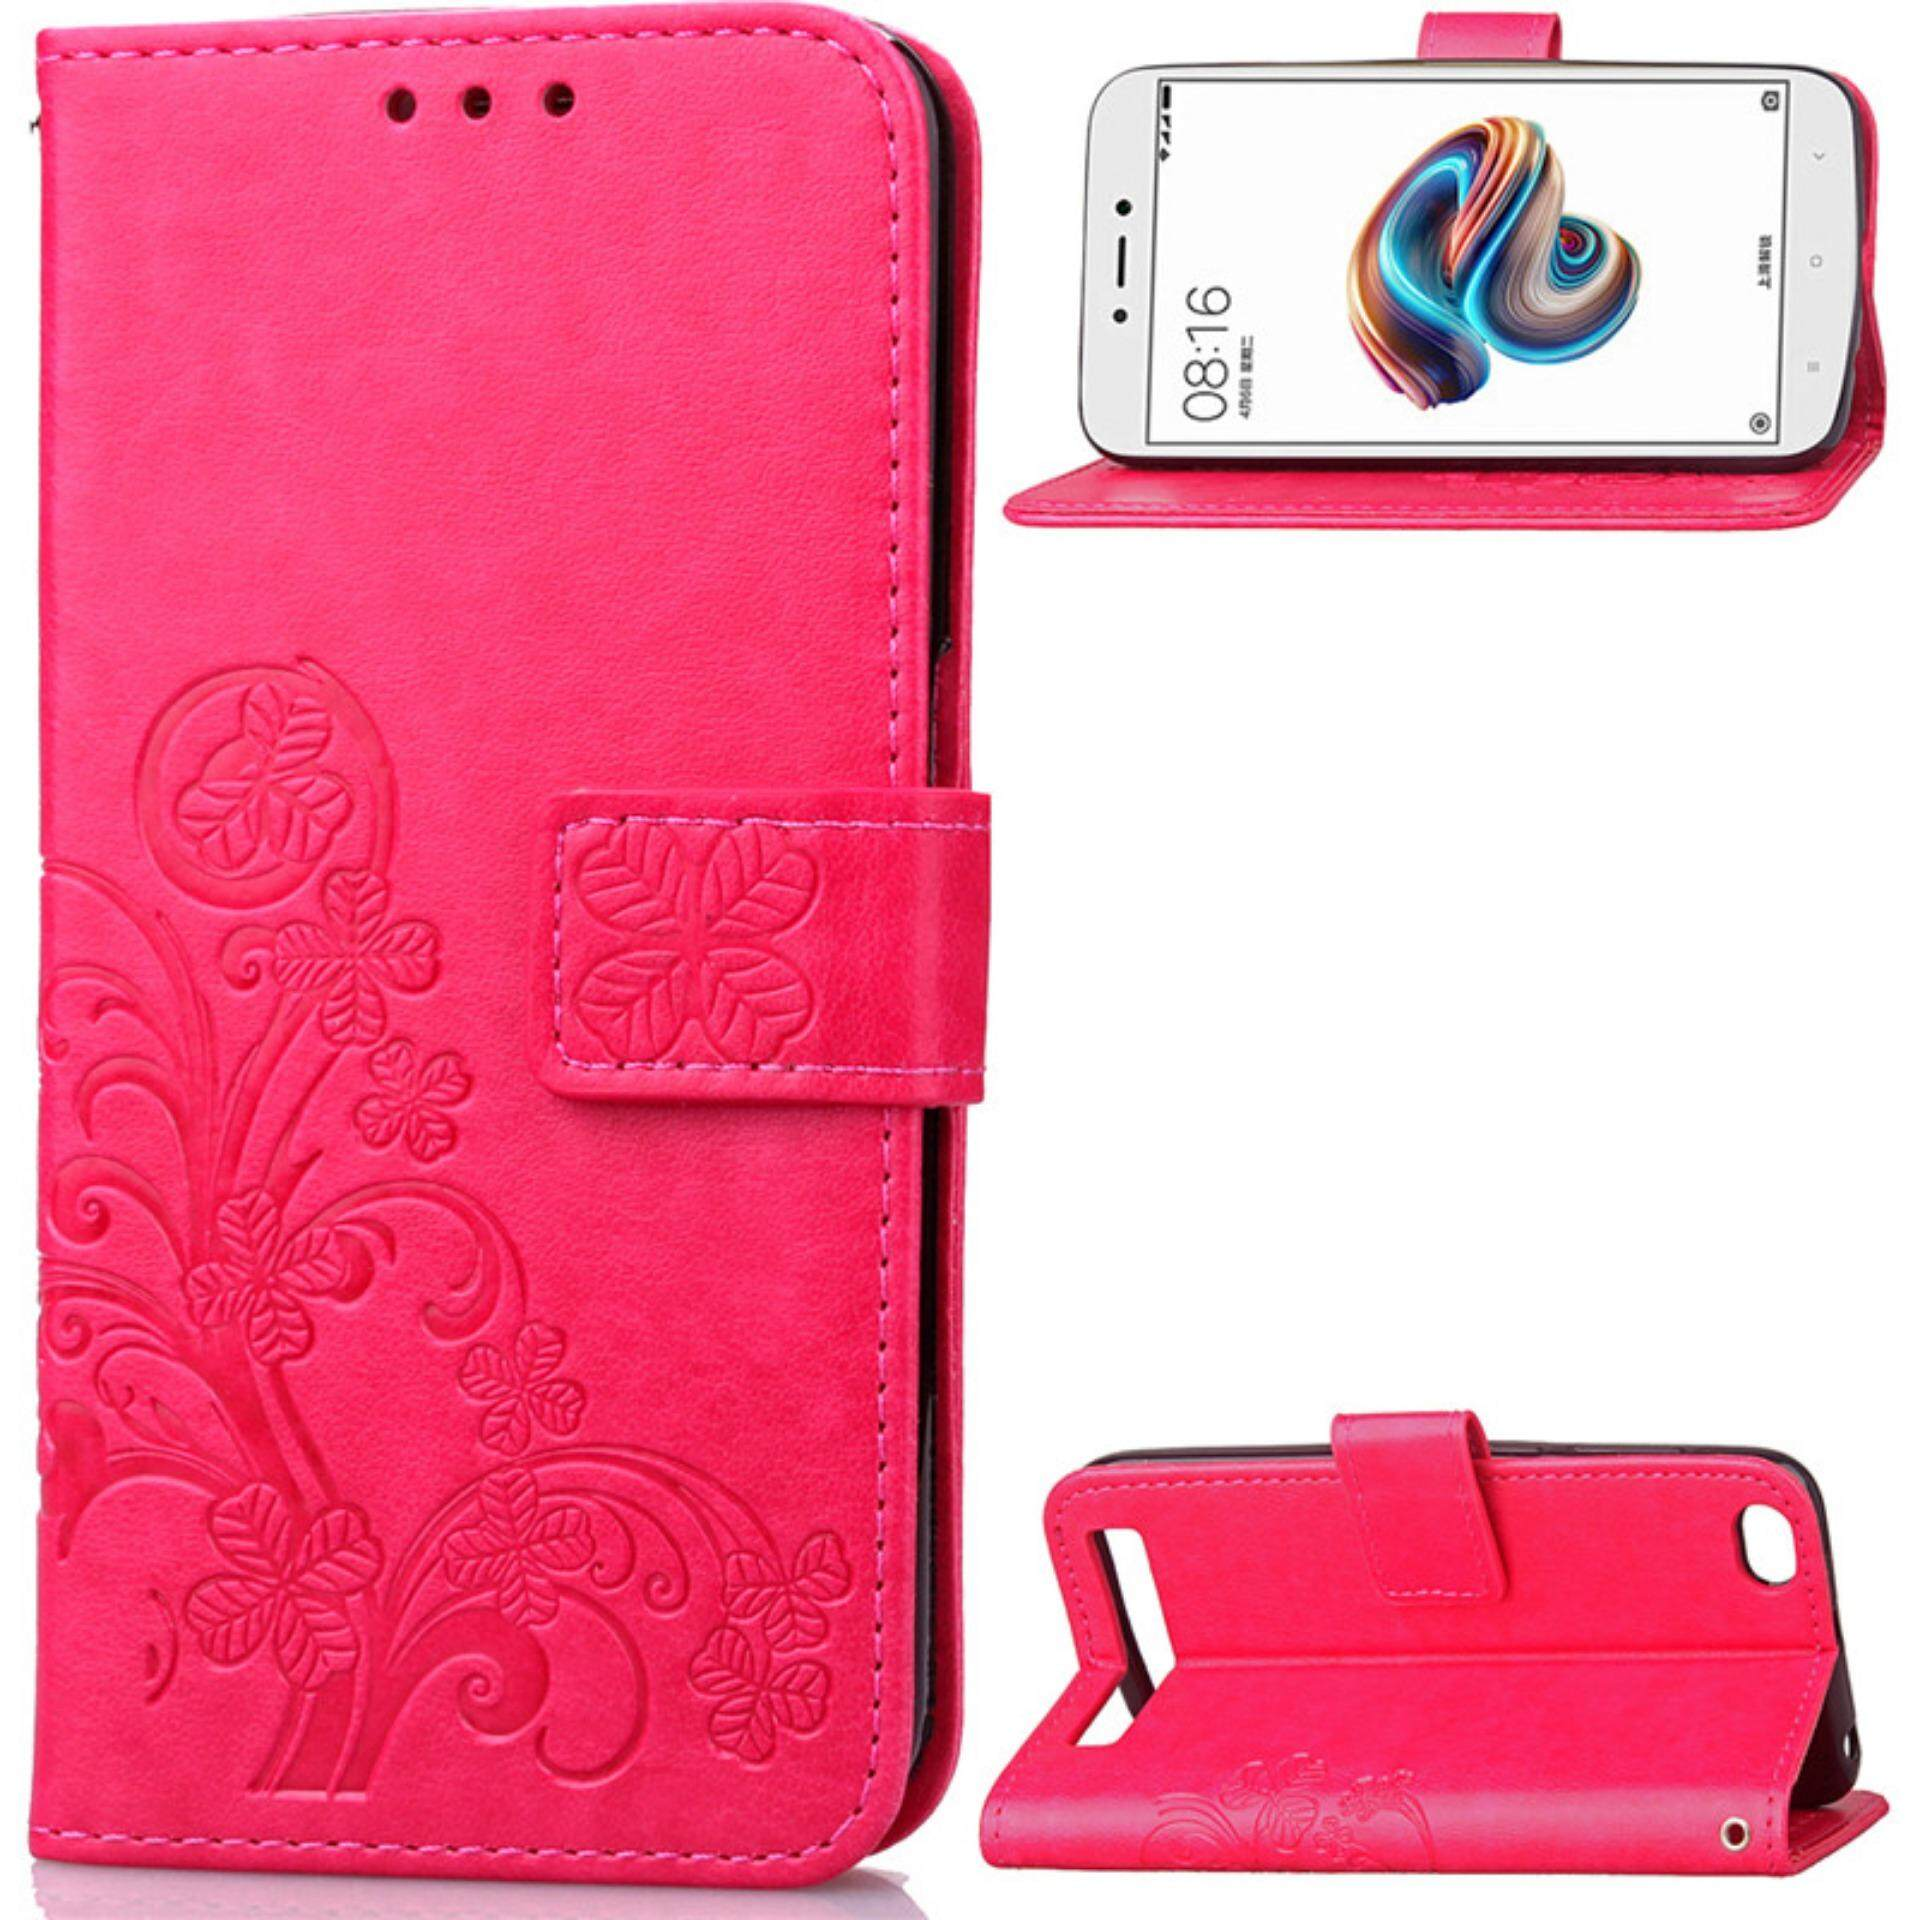 Flower Debossed Leather Flip Cover Case for Xiaomi Redmi Note 5A - intlTHB223. THB 223